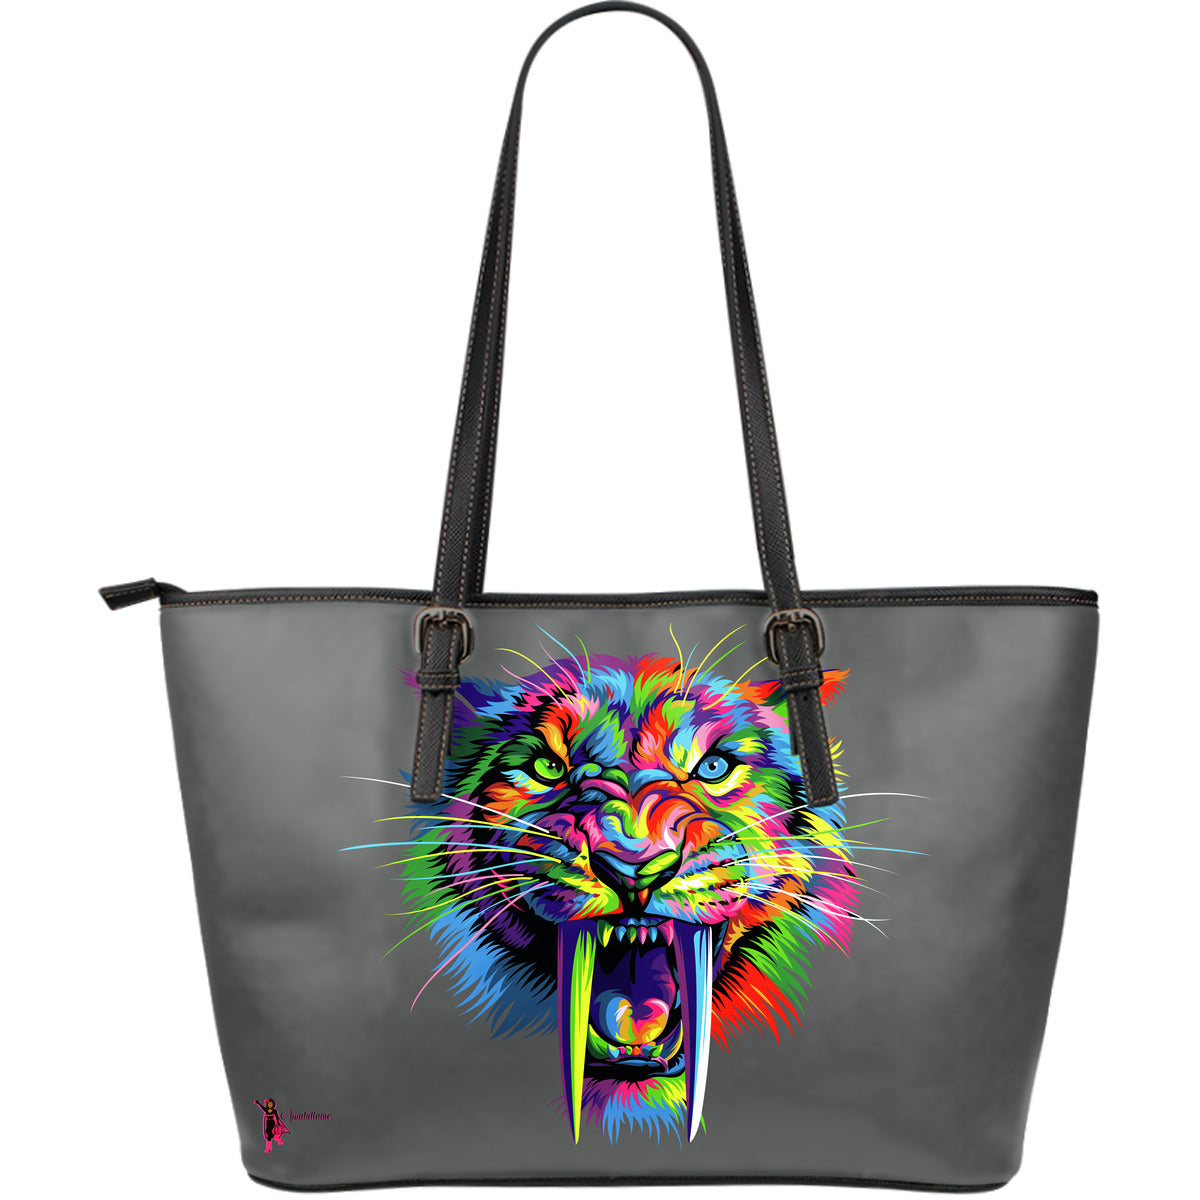 Sabertooth Leather Tote Bag